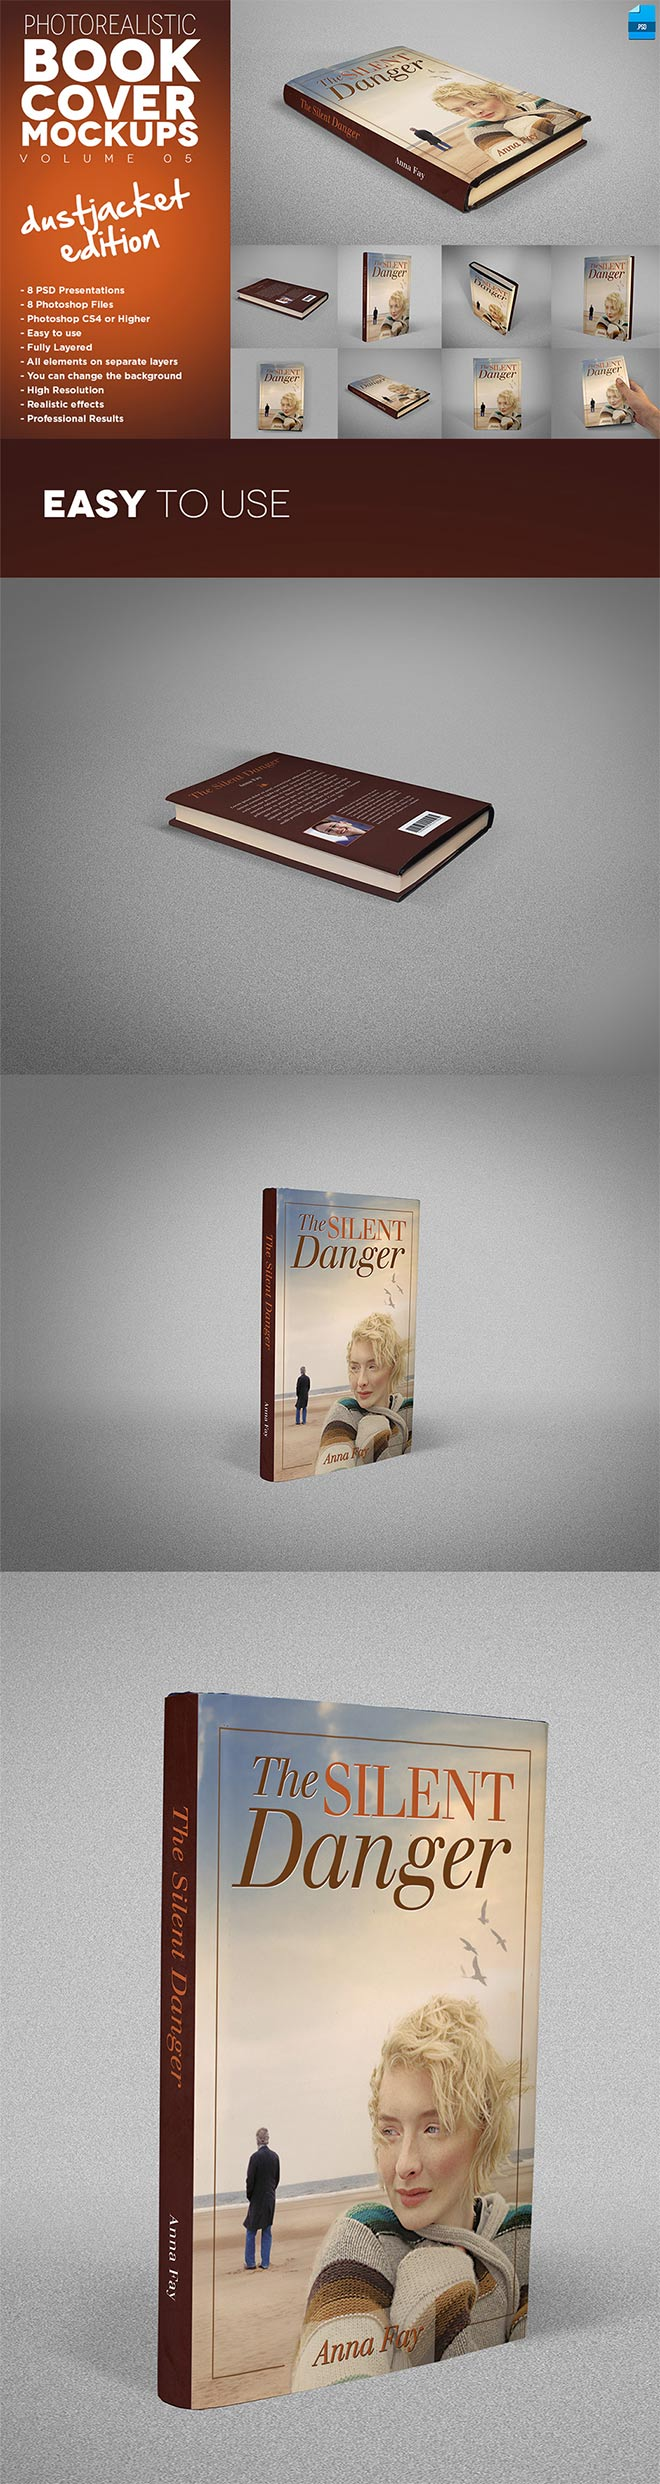 Book Cover Mockup Dust Jacket Edition